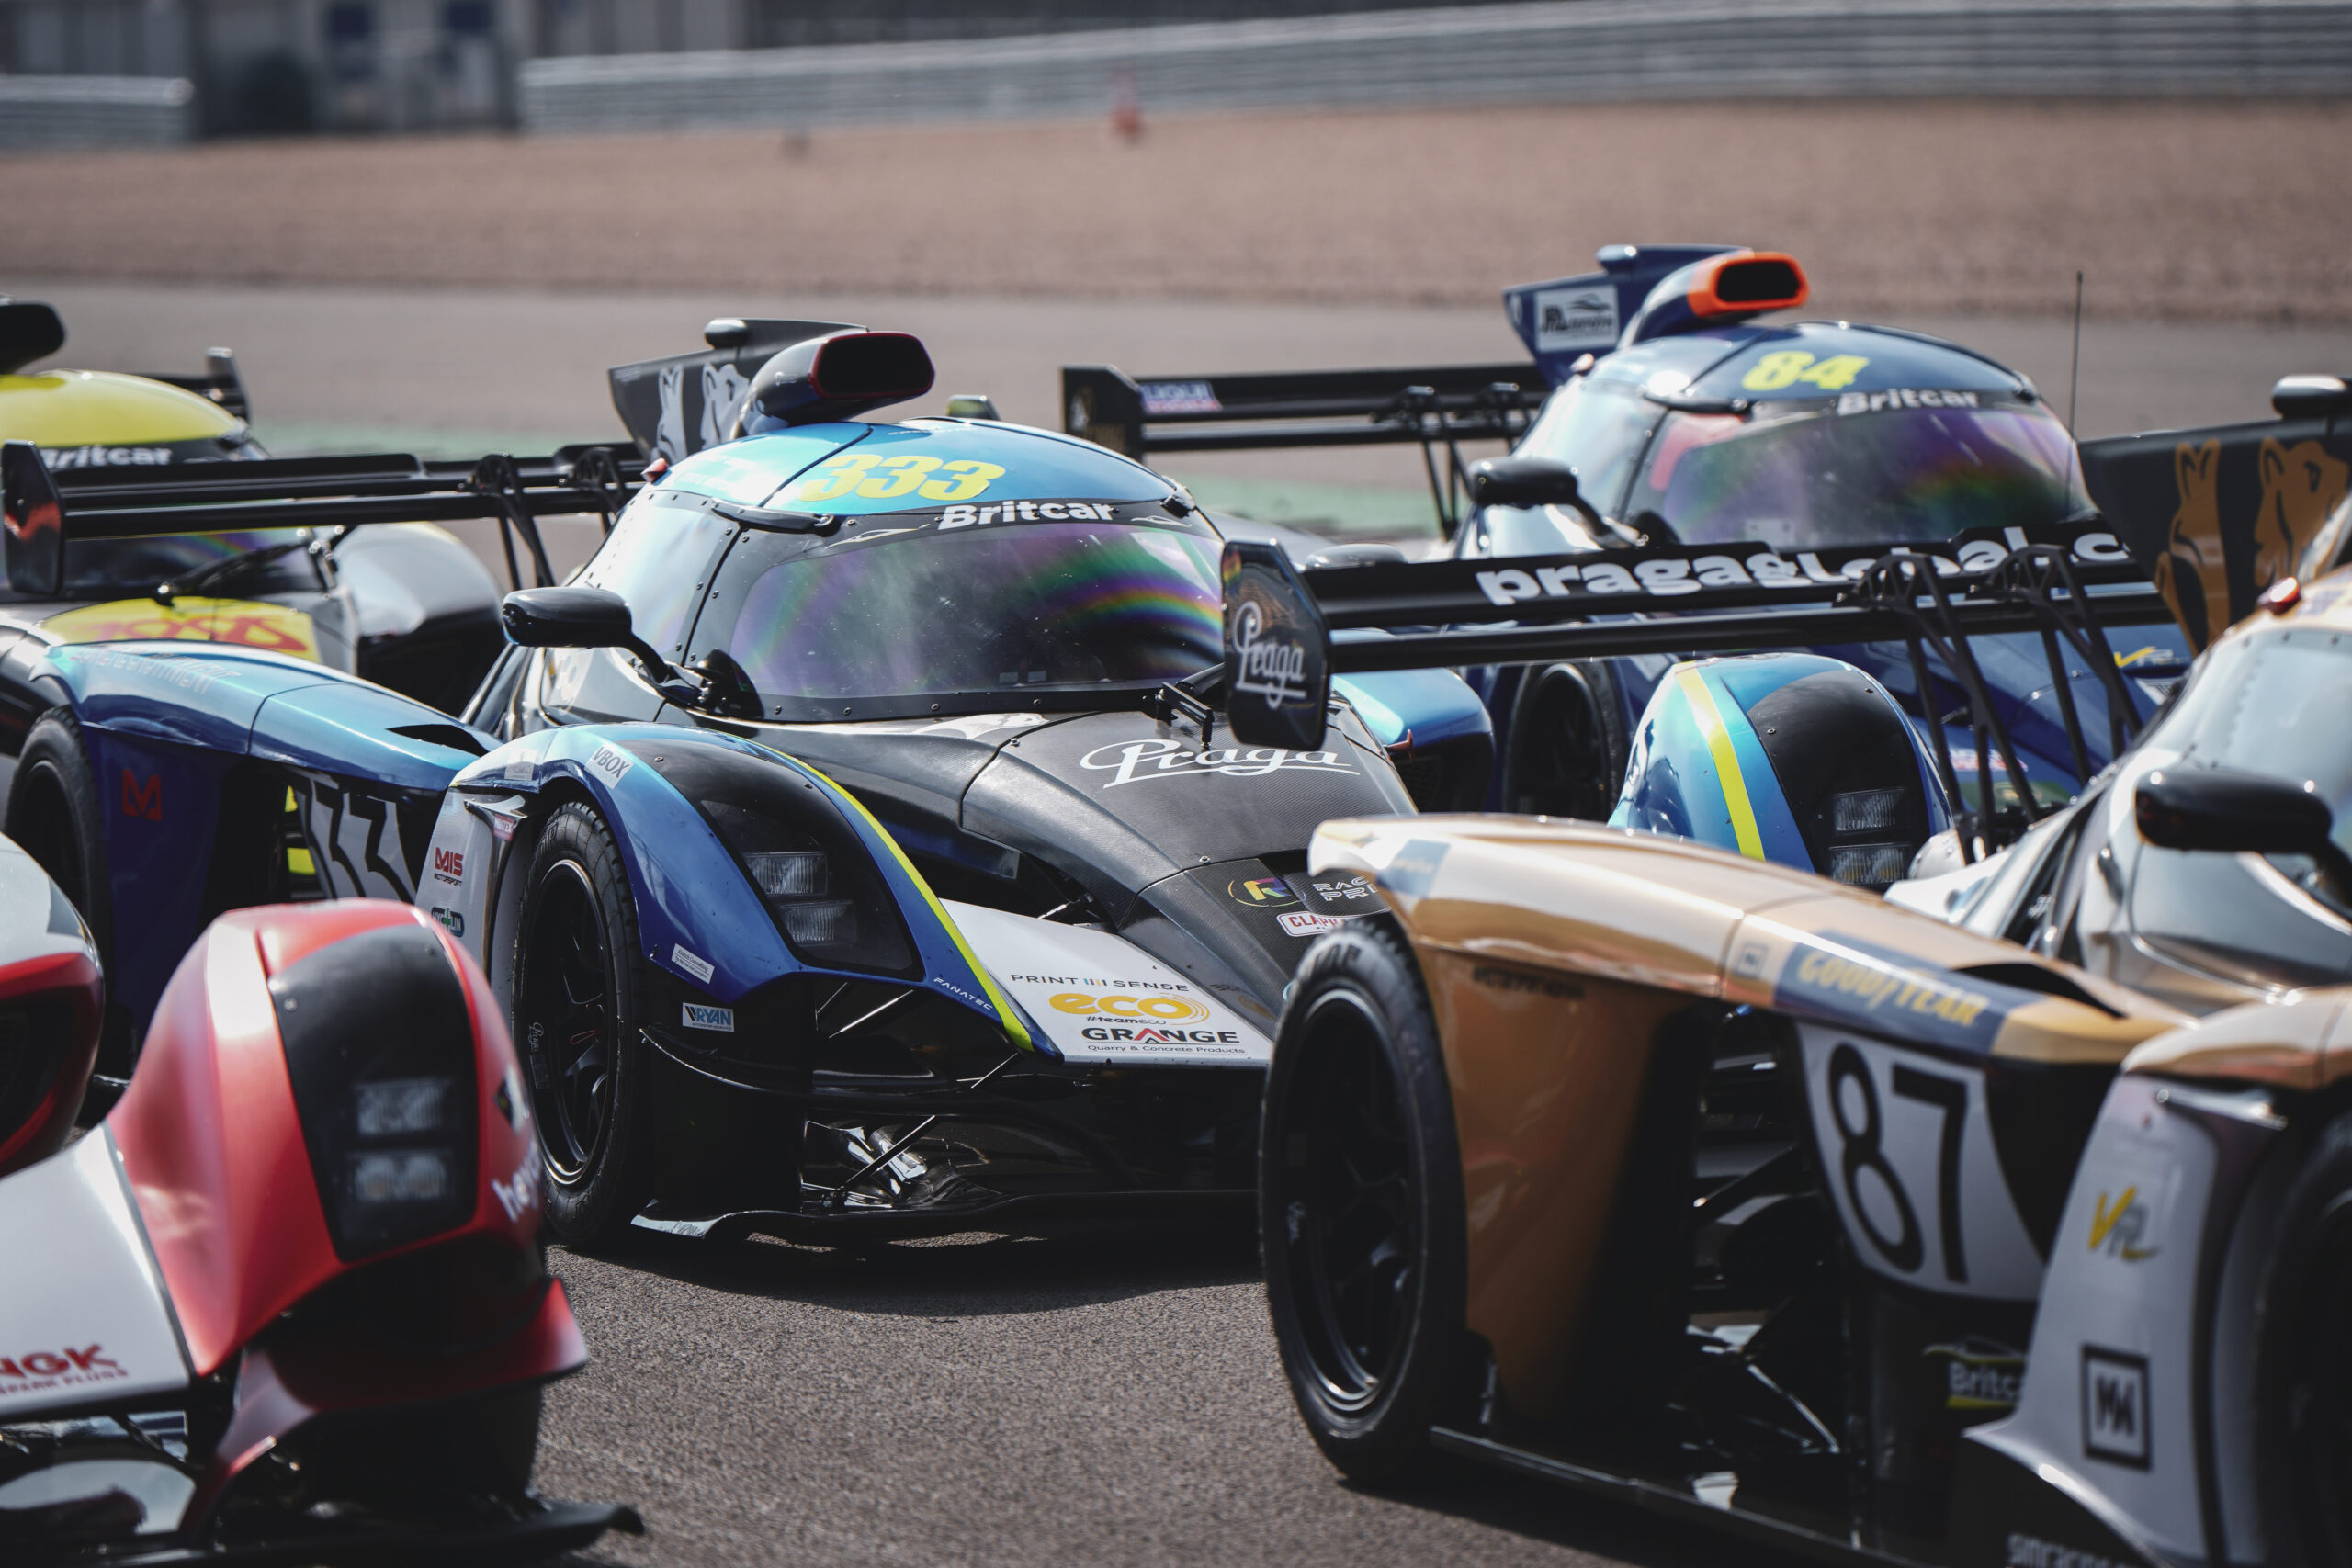 Praga | Four used R1s for sale: ten careful owners - professional racing drivers, TV stars, sim racers, and YouTubers